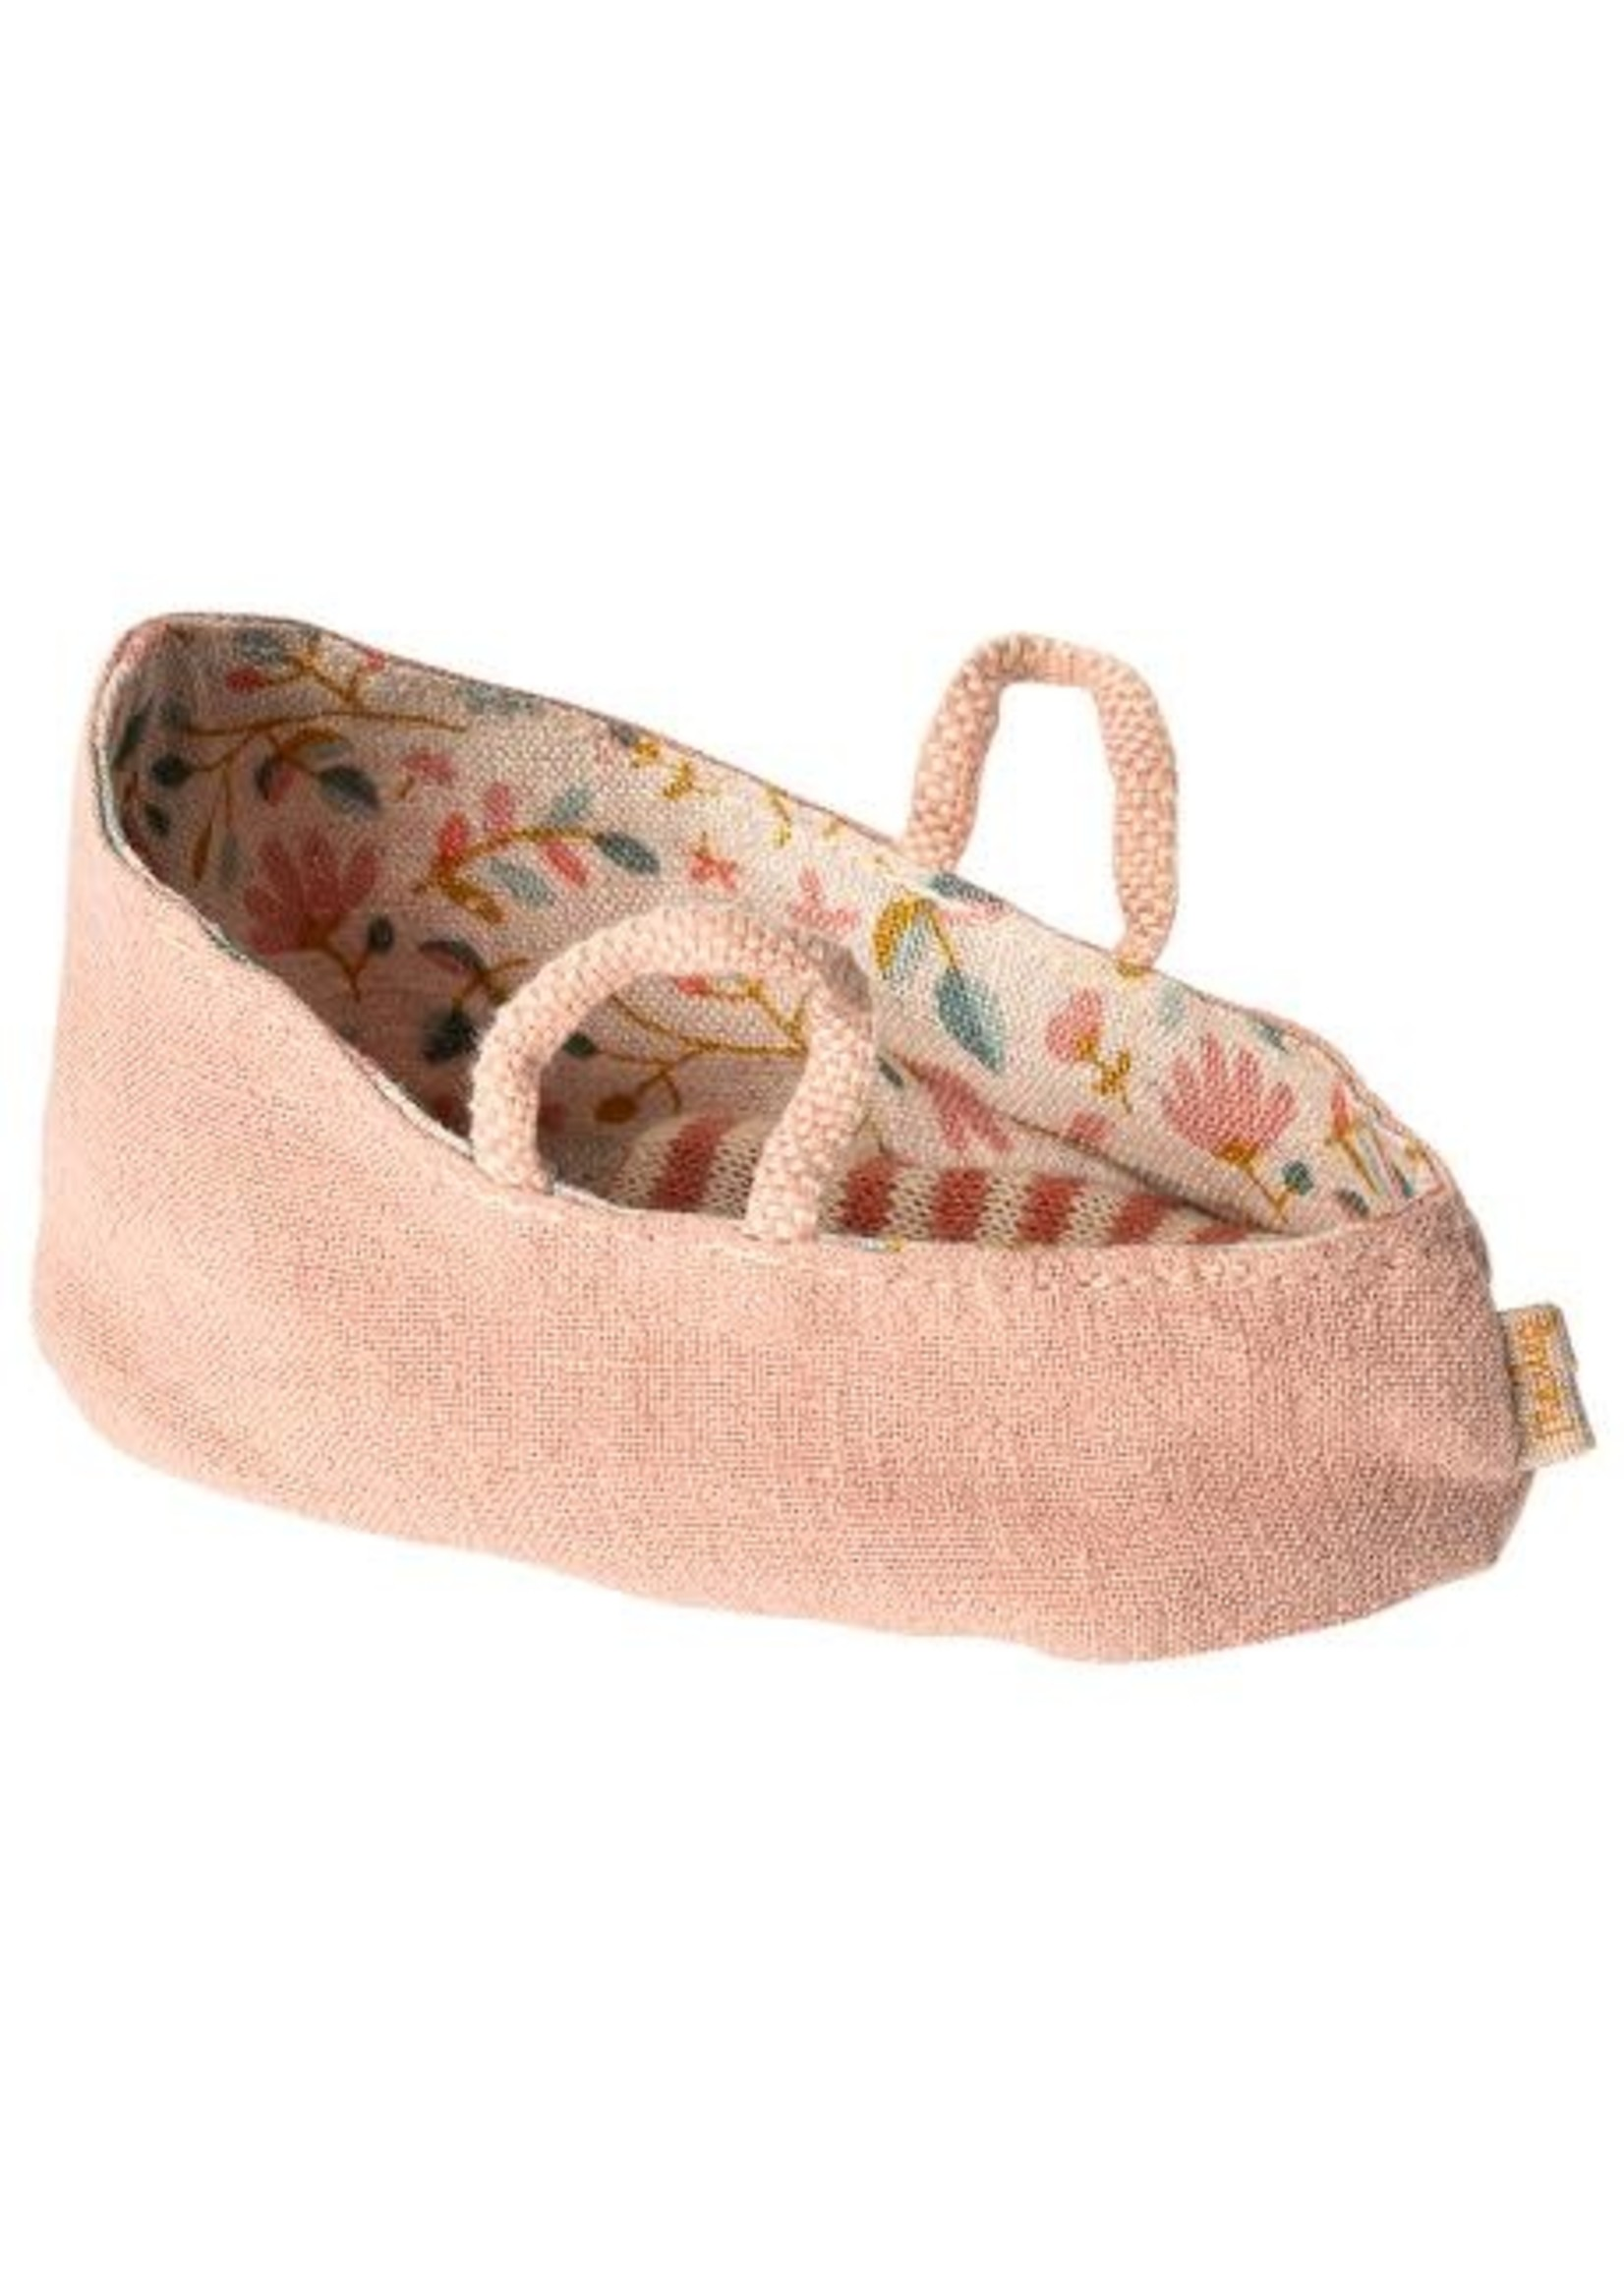 Maileg My Size - Carry Cot - Misty Rose